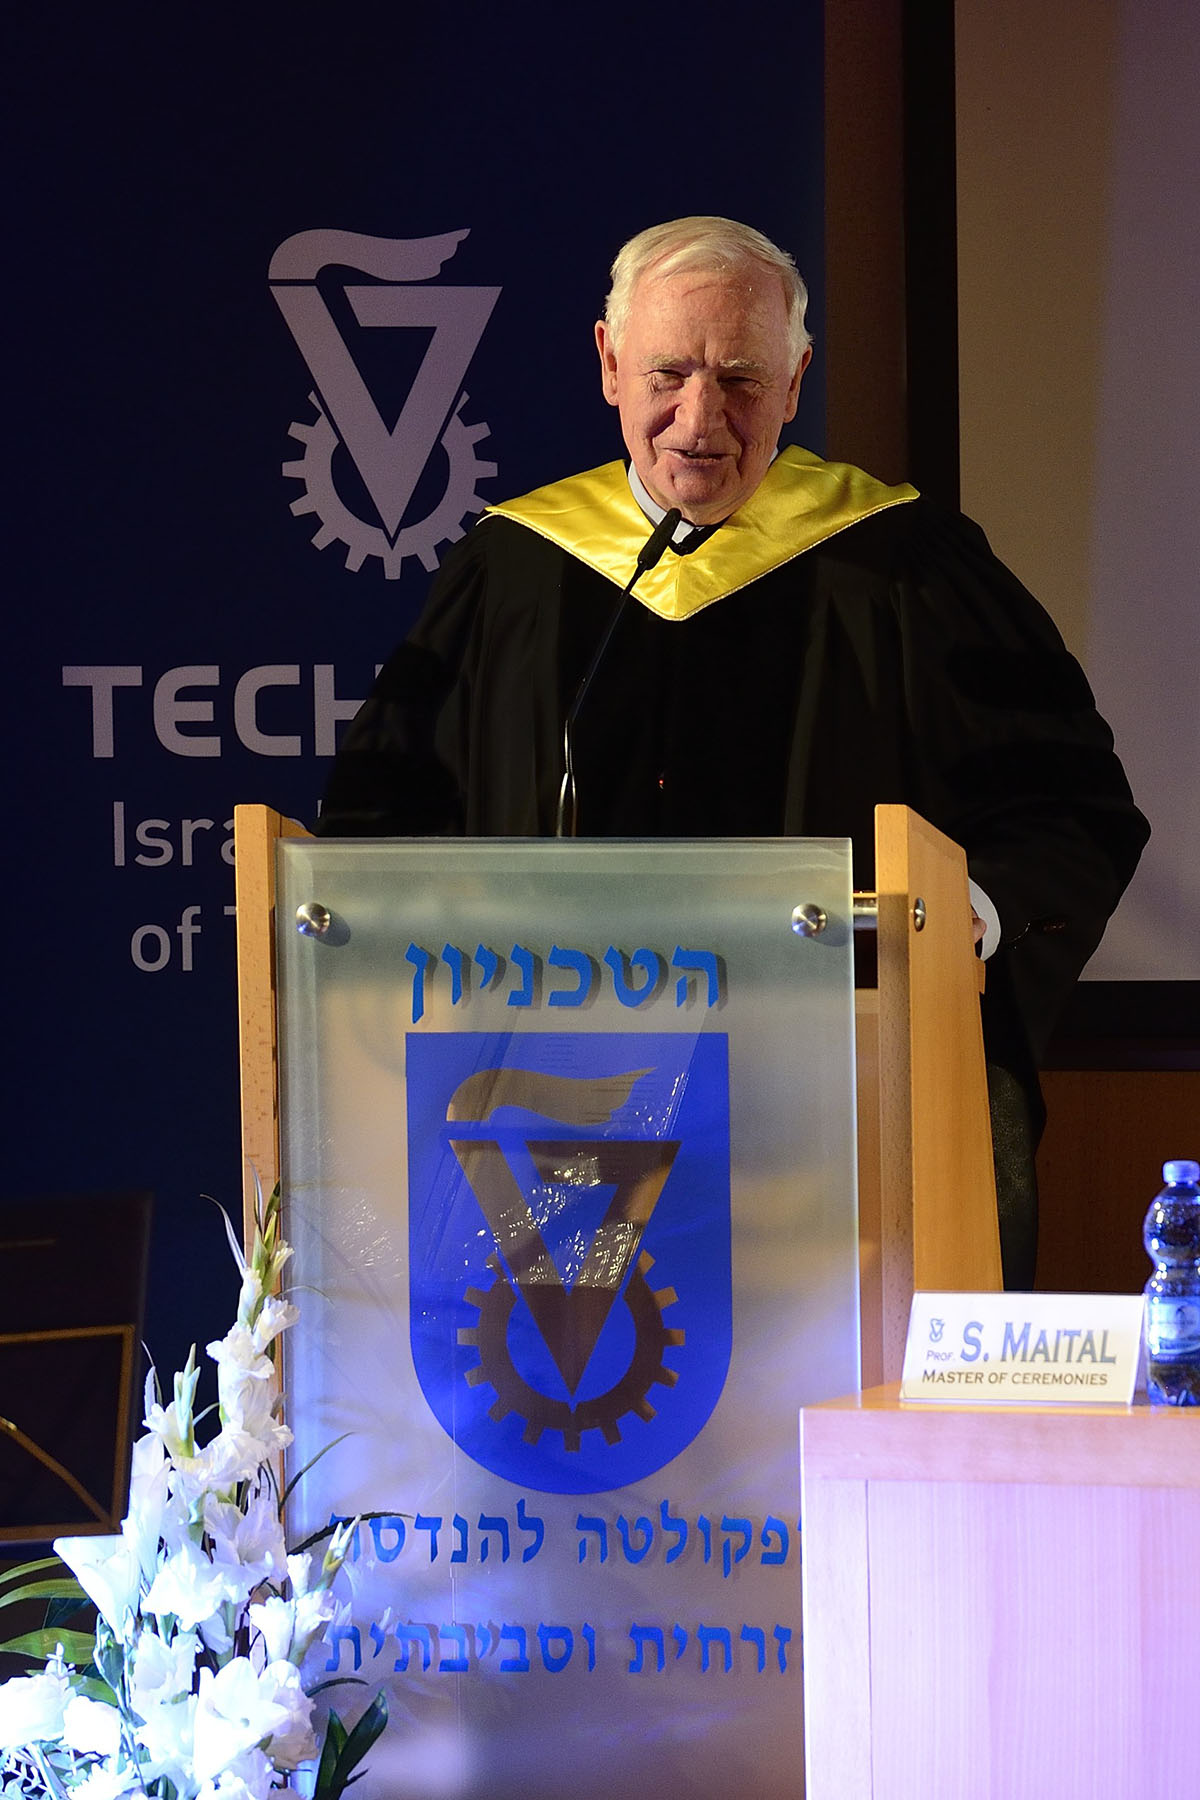 "His Excellency delivered an address on how diversity and innovation reinforce each other: ""I believe the future belongs to those who embrace diversity and build cultures of innovation with global reach. Innovation, in my view, is an economic and social process, a means by which productivity is improved and better ways of organizing and operating are achieved as a society."